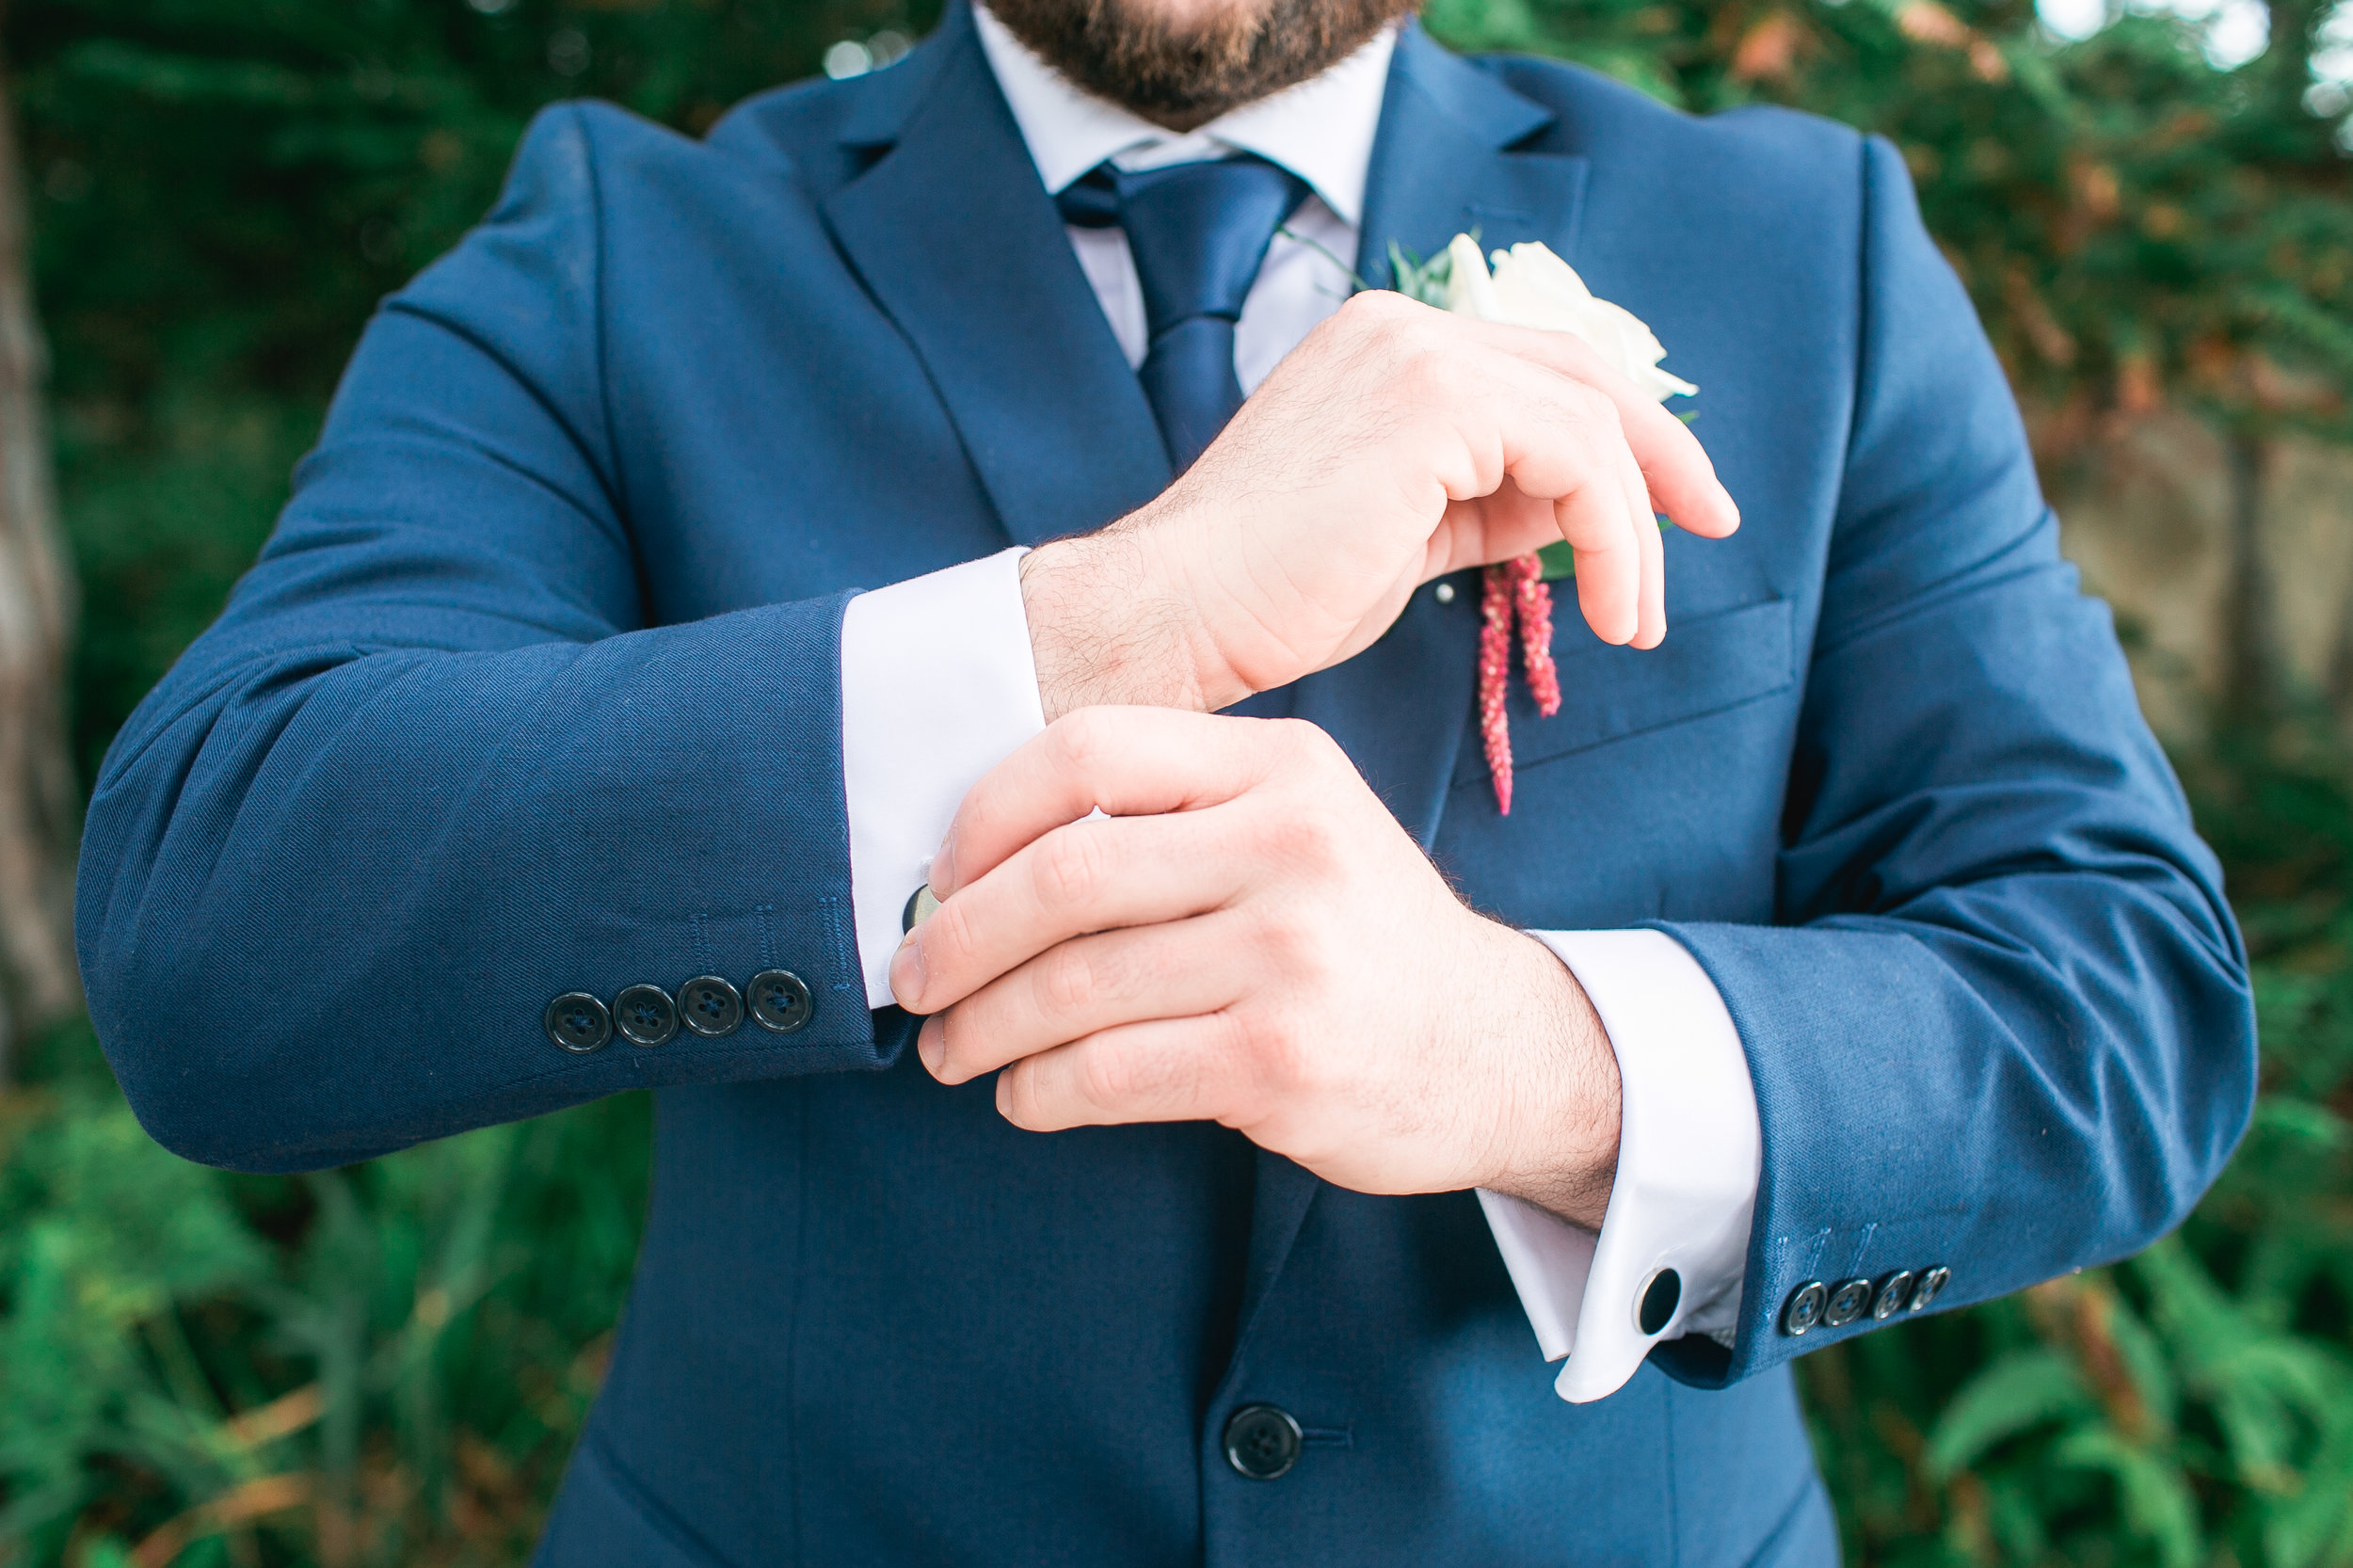 And the groom? Equally as beautiful.